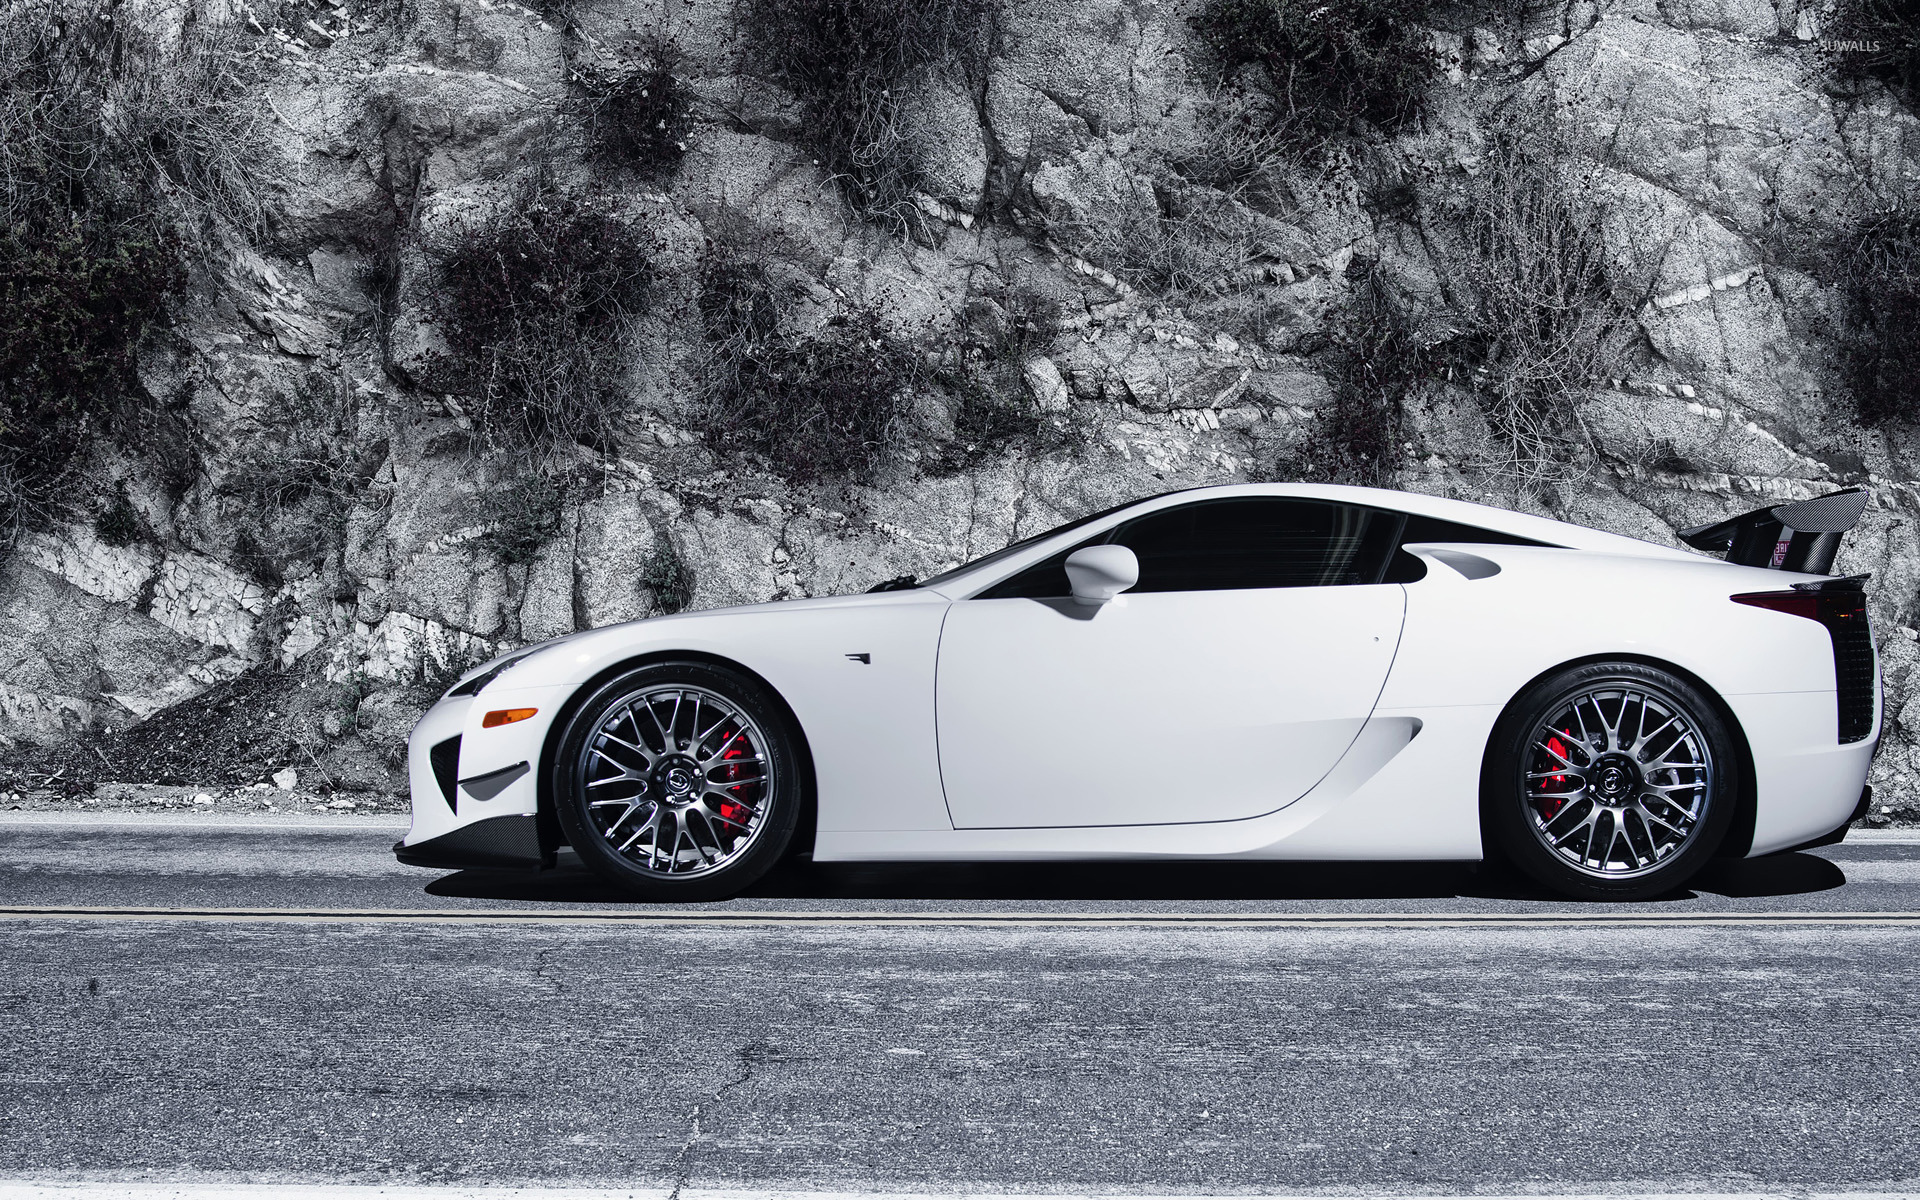 Lexus LF-LC Hybrid wallpaper - Car wallpapers - #18200